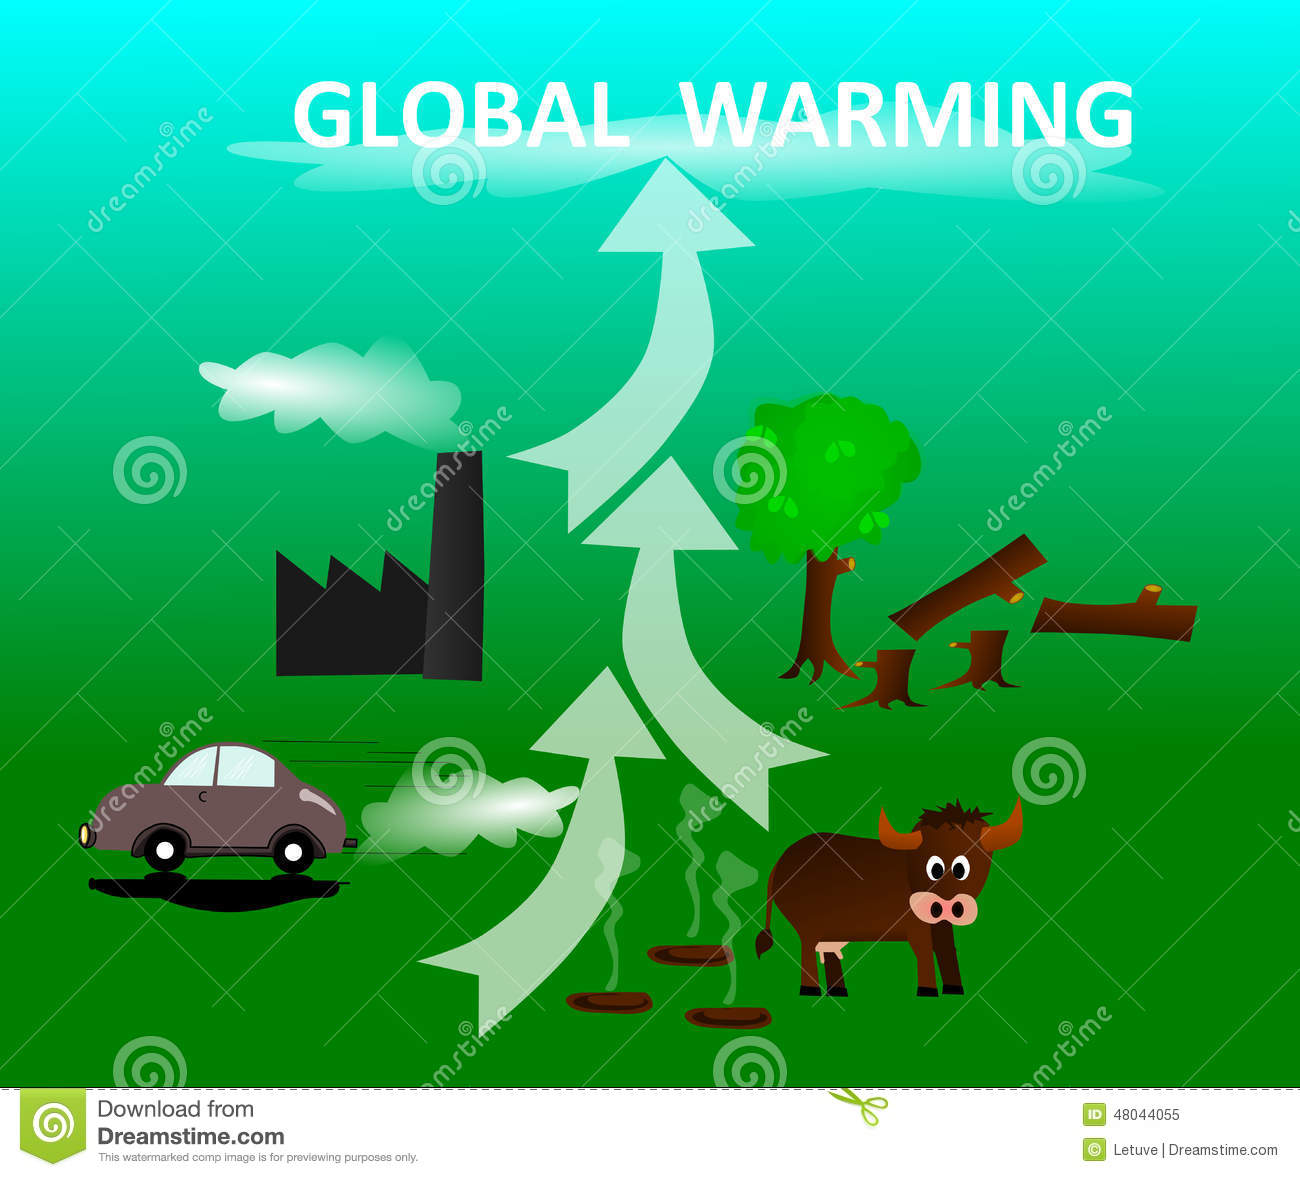 global warming caused by globalisation The greenhouse effect occurs when earth's atmosphere traps solar radiation because of the presence of certain gases, which resulting in global warming.